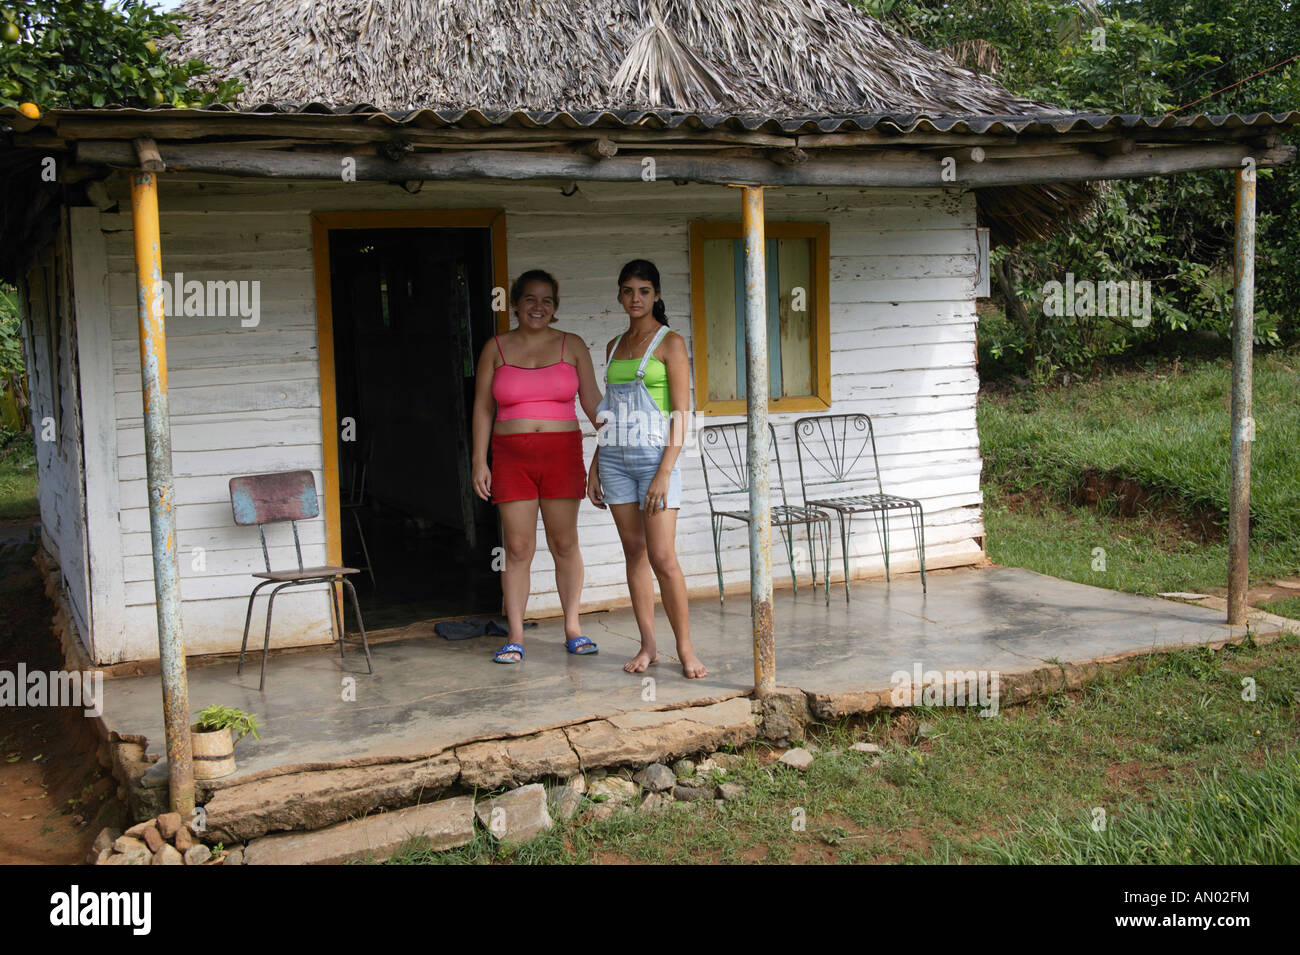 Women standing by their bohio or thatched house in Pinar Province, Cuba. - Stock Image